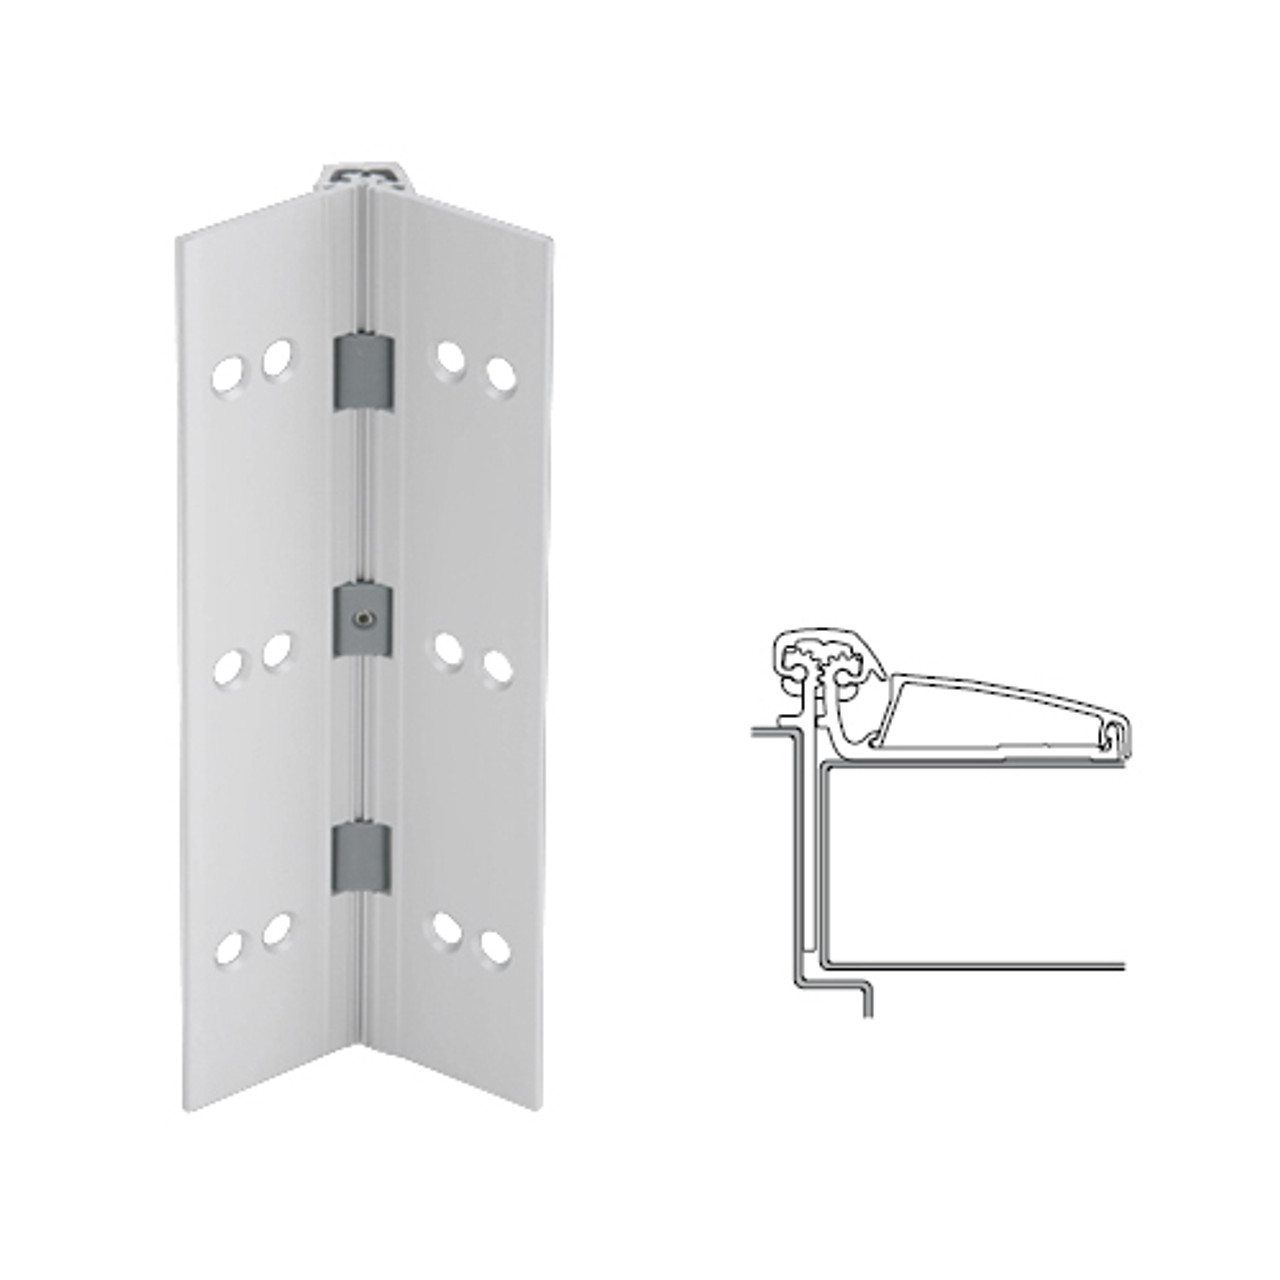 046XY-US28-120-TEKWD IVES Adjustable Half Surface Continuous Geared Hinges with Wood Screws in Satin Aluminum